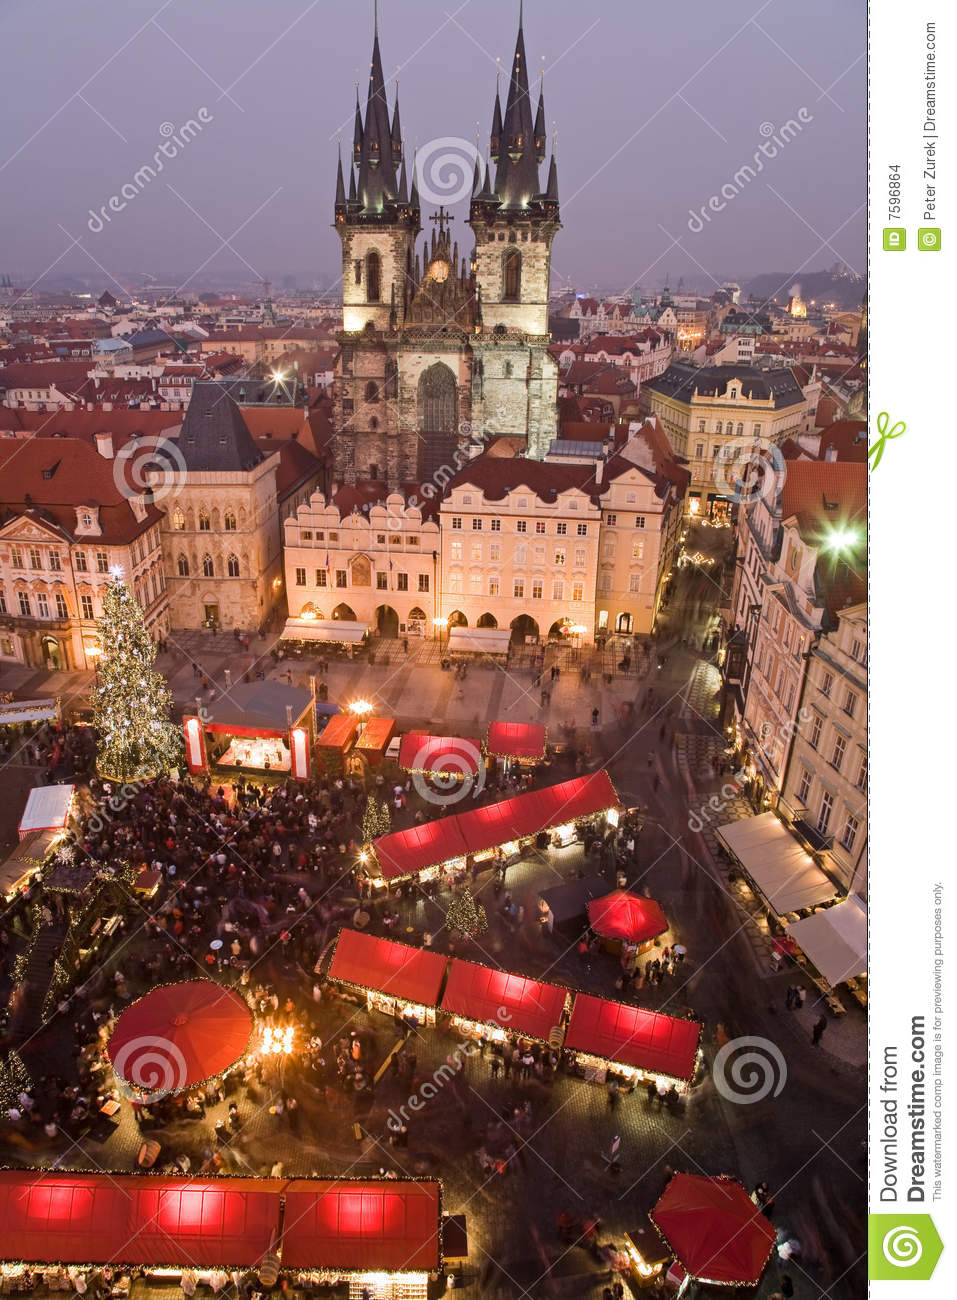 weihnachtsmarkt in prag stockfoto bild von markt. Black Bedroom Furniture Sets. Home Design Ideas